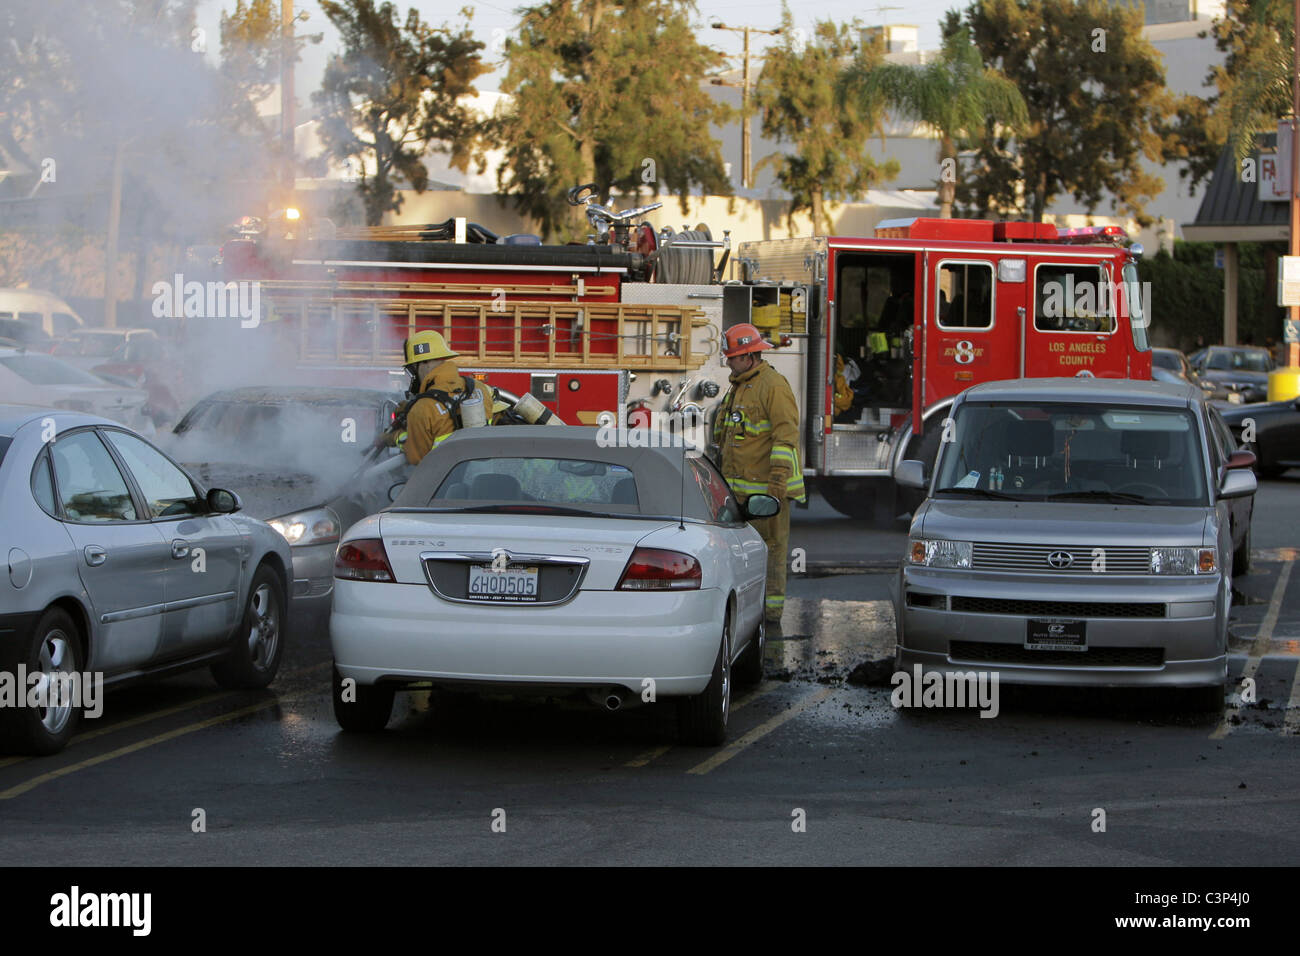 A Car Bursts Into Flames In The Parking Lot Of A Trader Joe S